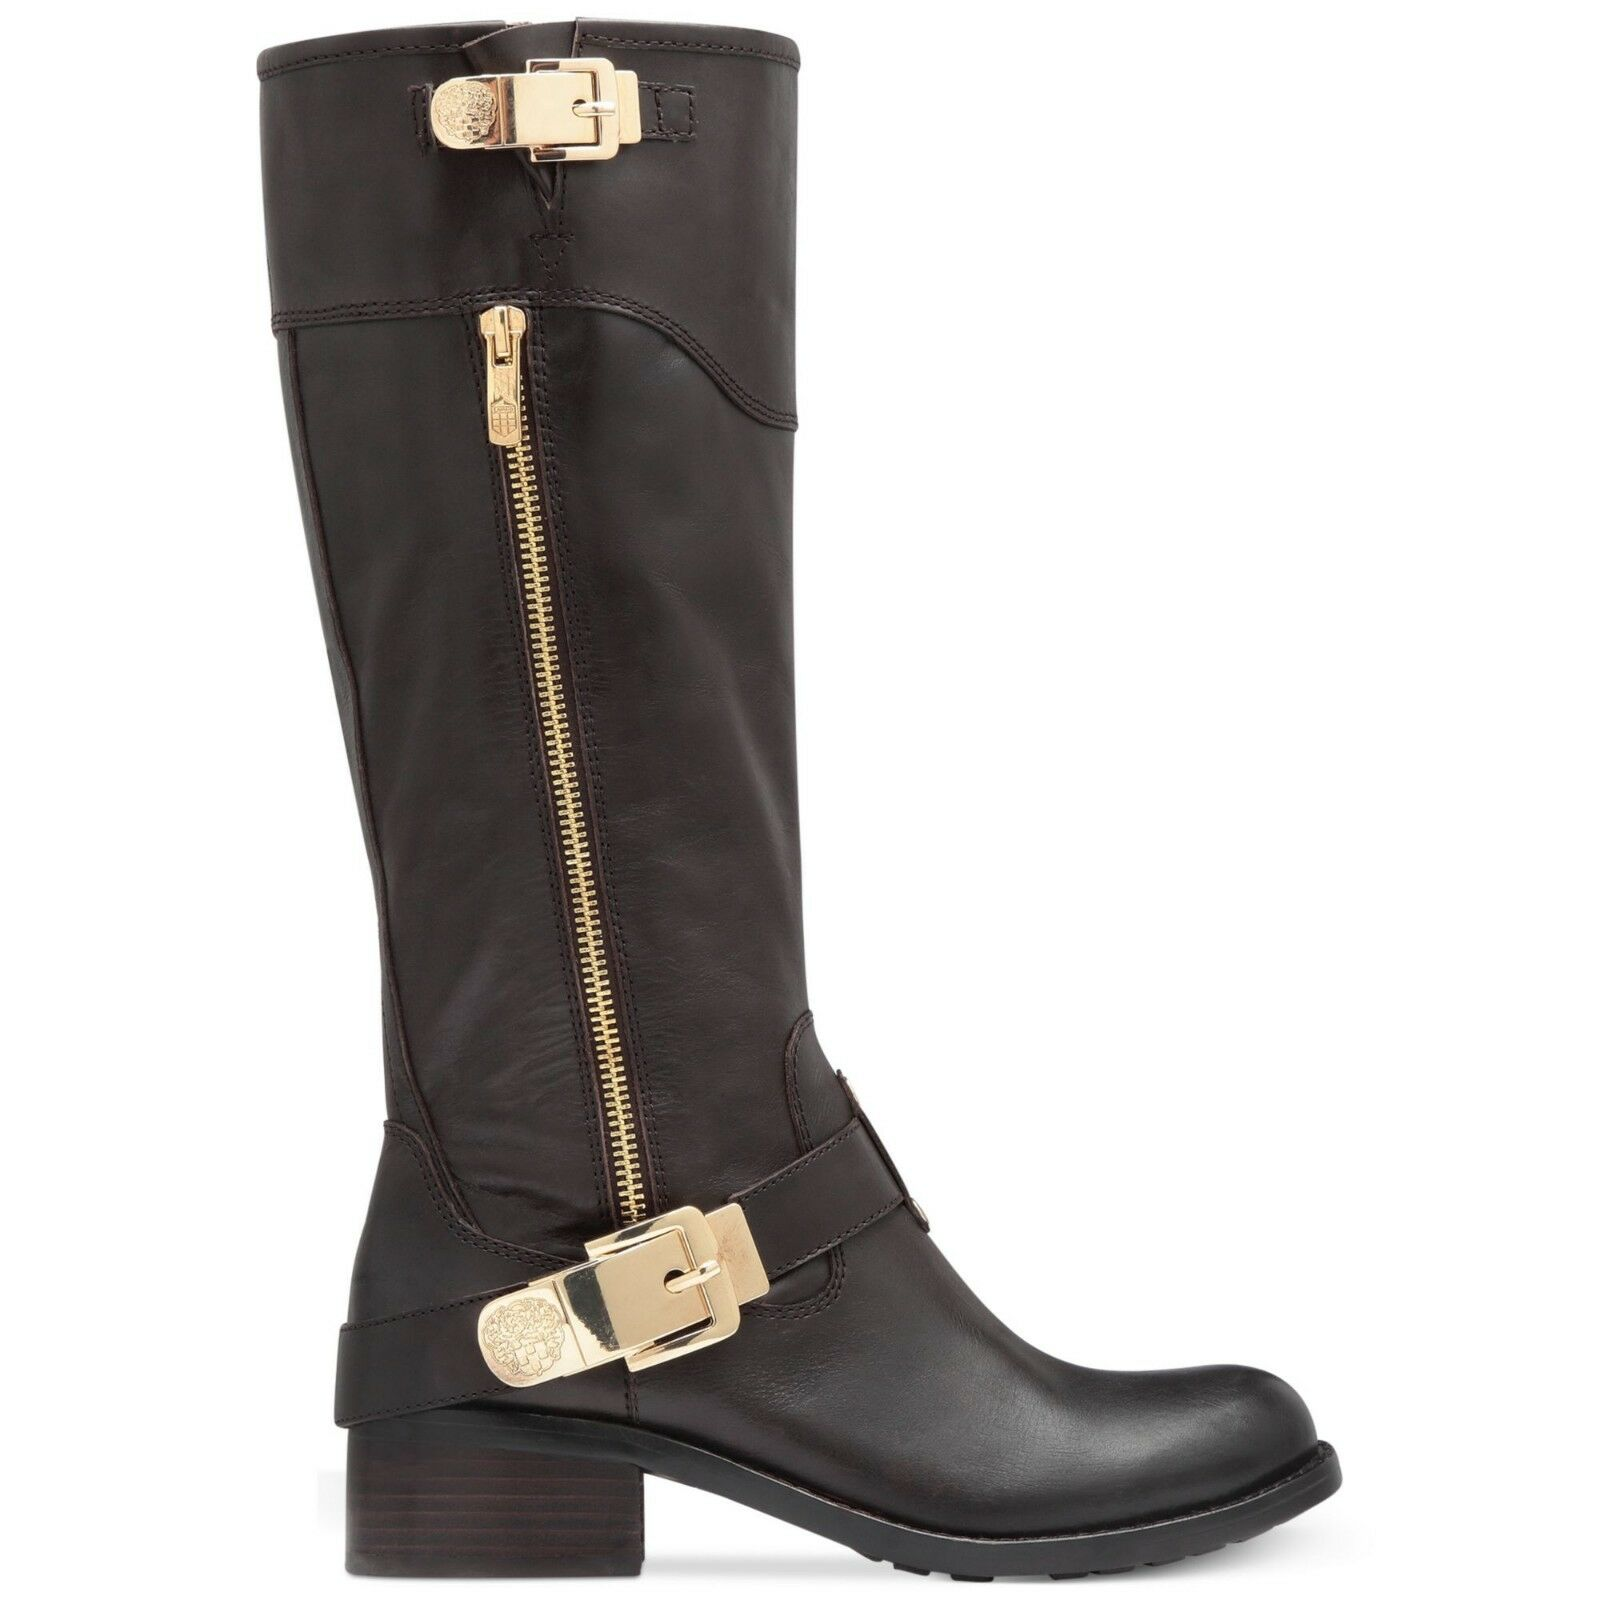 Vince Camuto Waymin Leather motorcycle boots Fudge Brownie Dark Brown 6 NEW